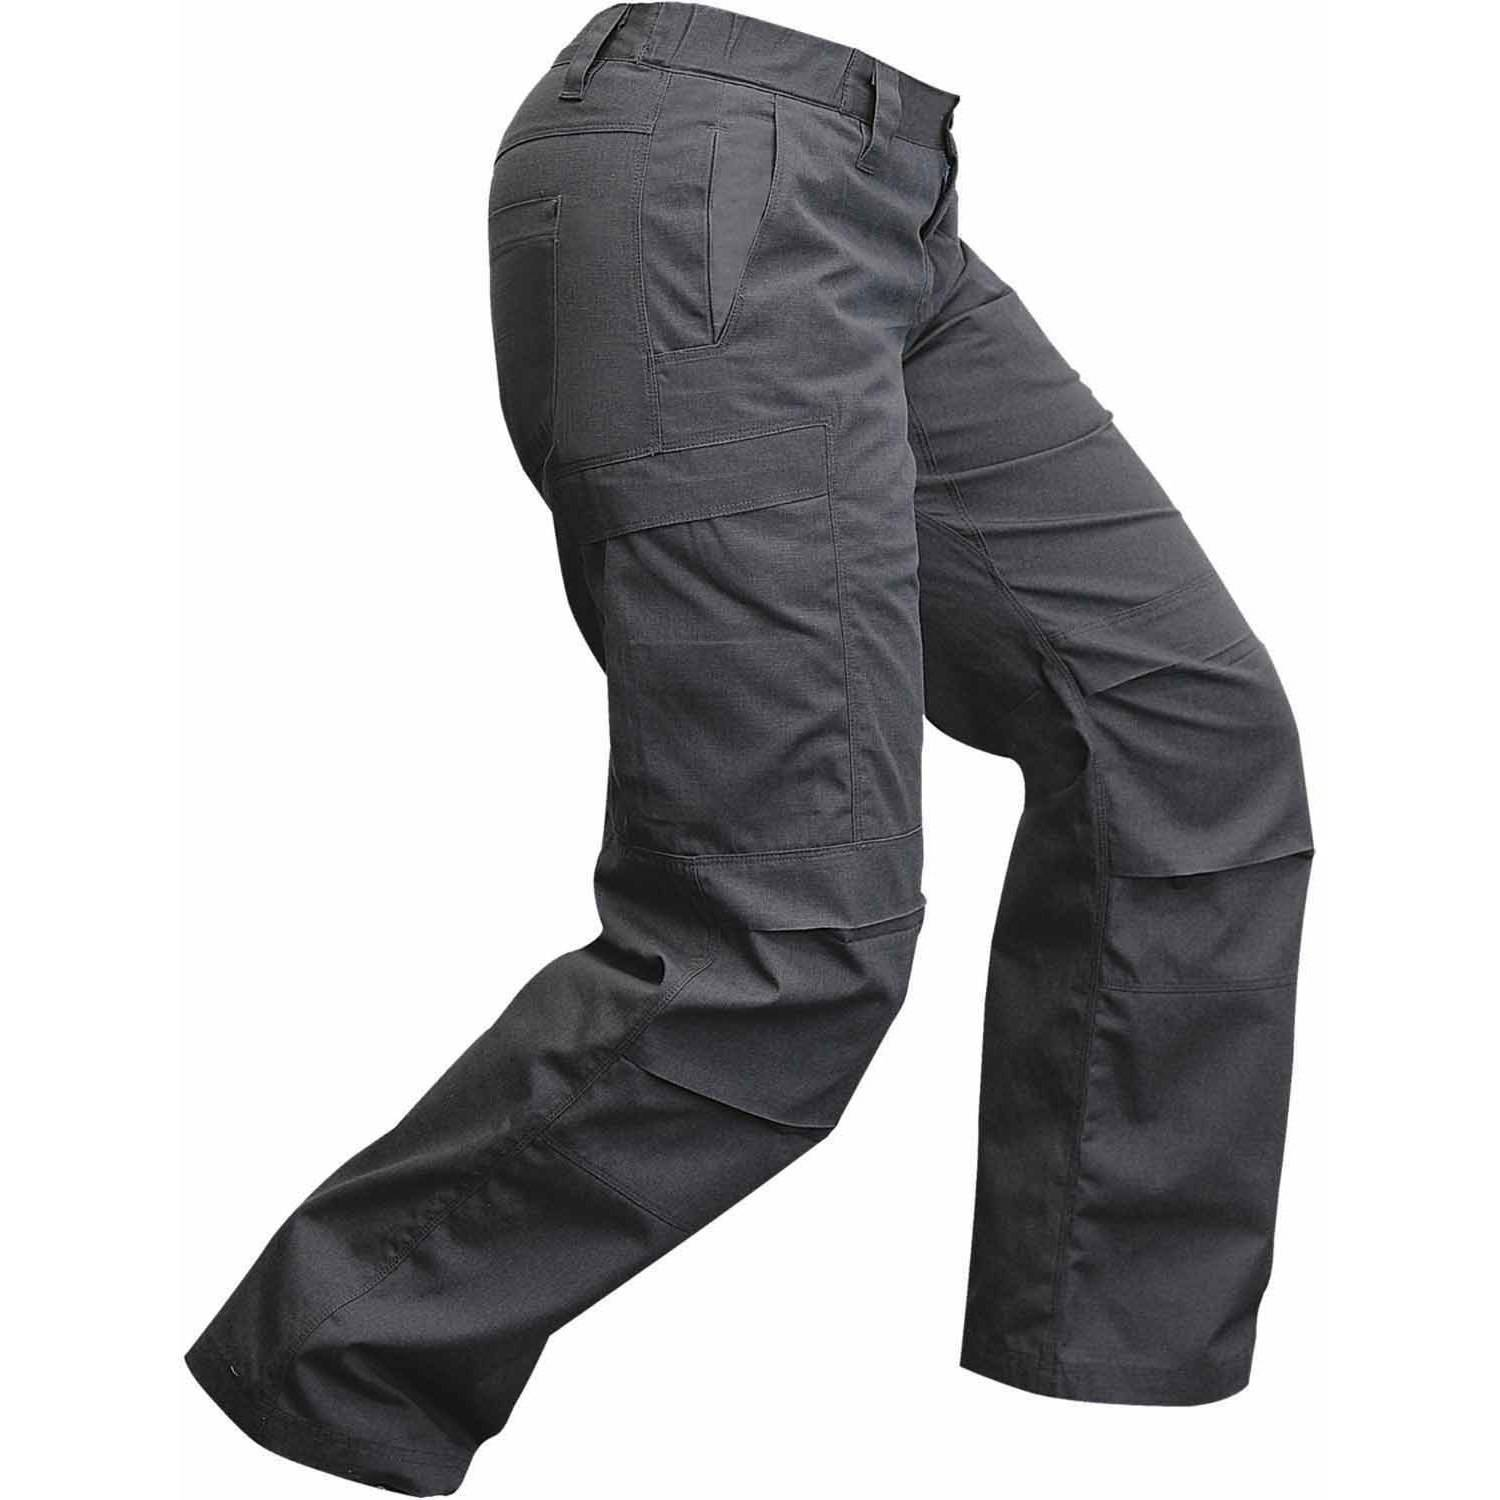 Vertx Phantom Lt Women's Tactical Pants, Smoke Grey